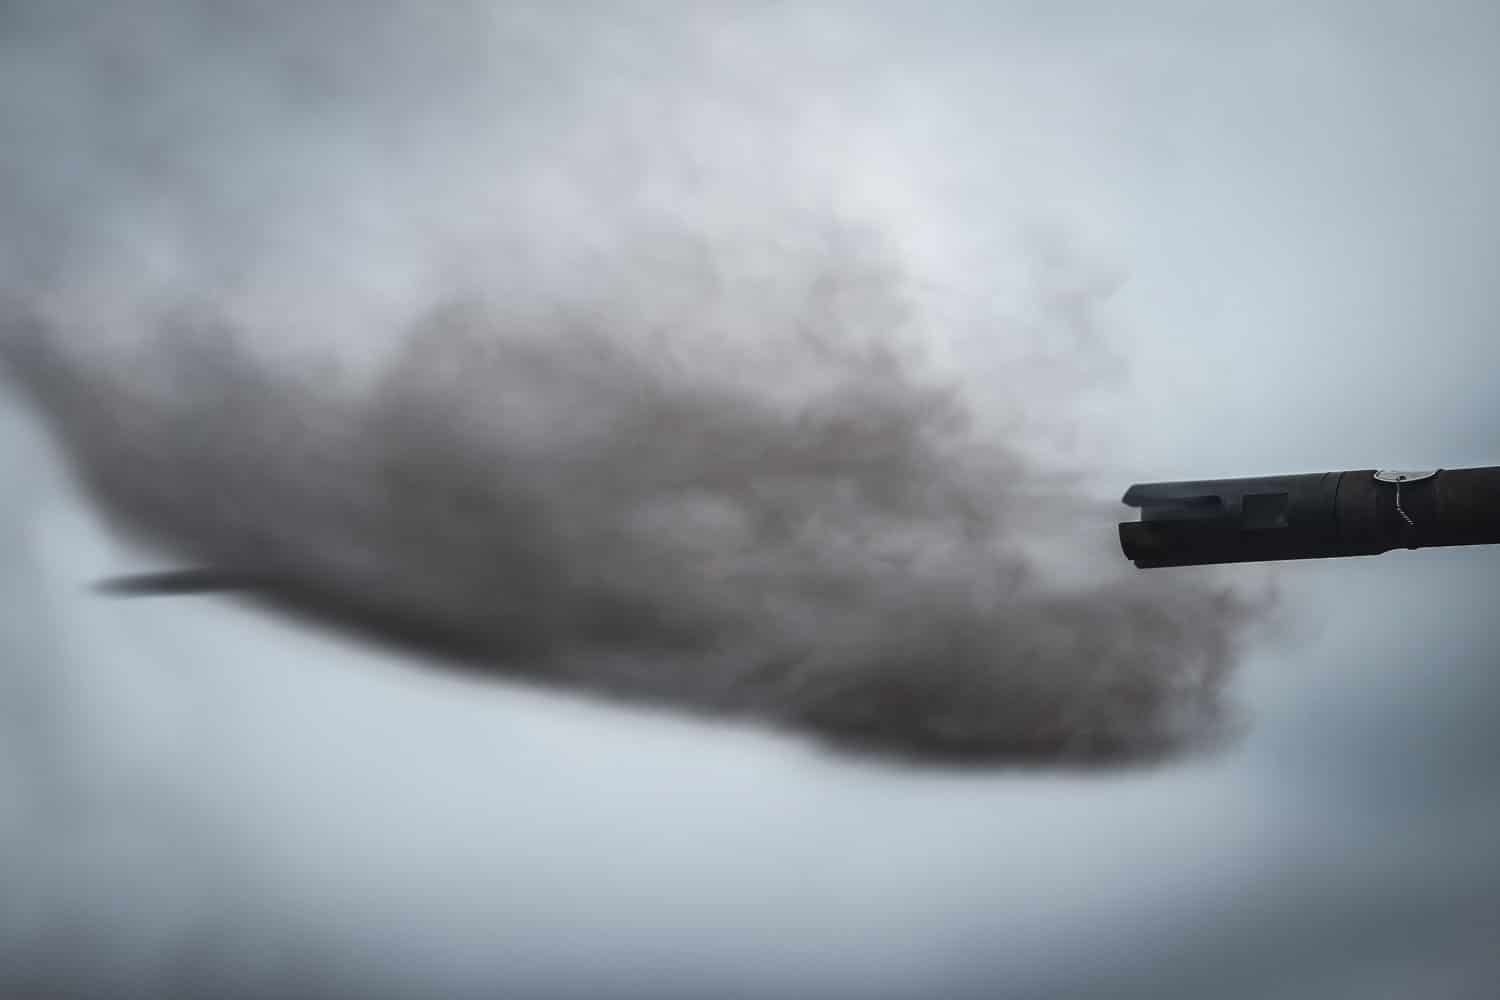 A .50 caliber round ejects from the barrel of an M2 .50 caliber machine gun during Exercise Fuji Viper aboard Camp Fuji, Japan.